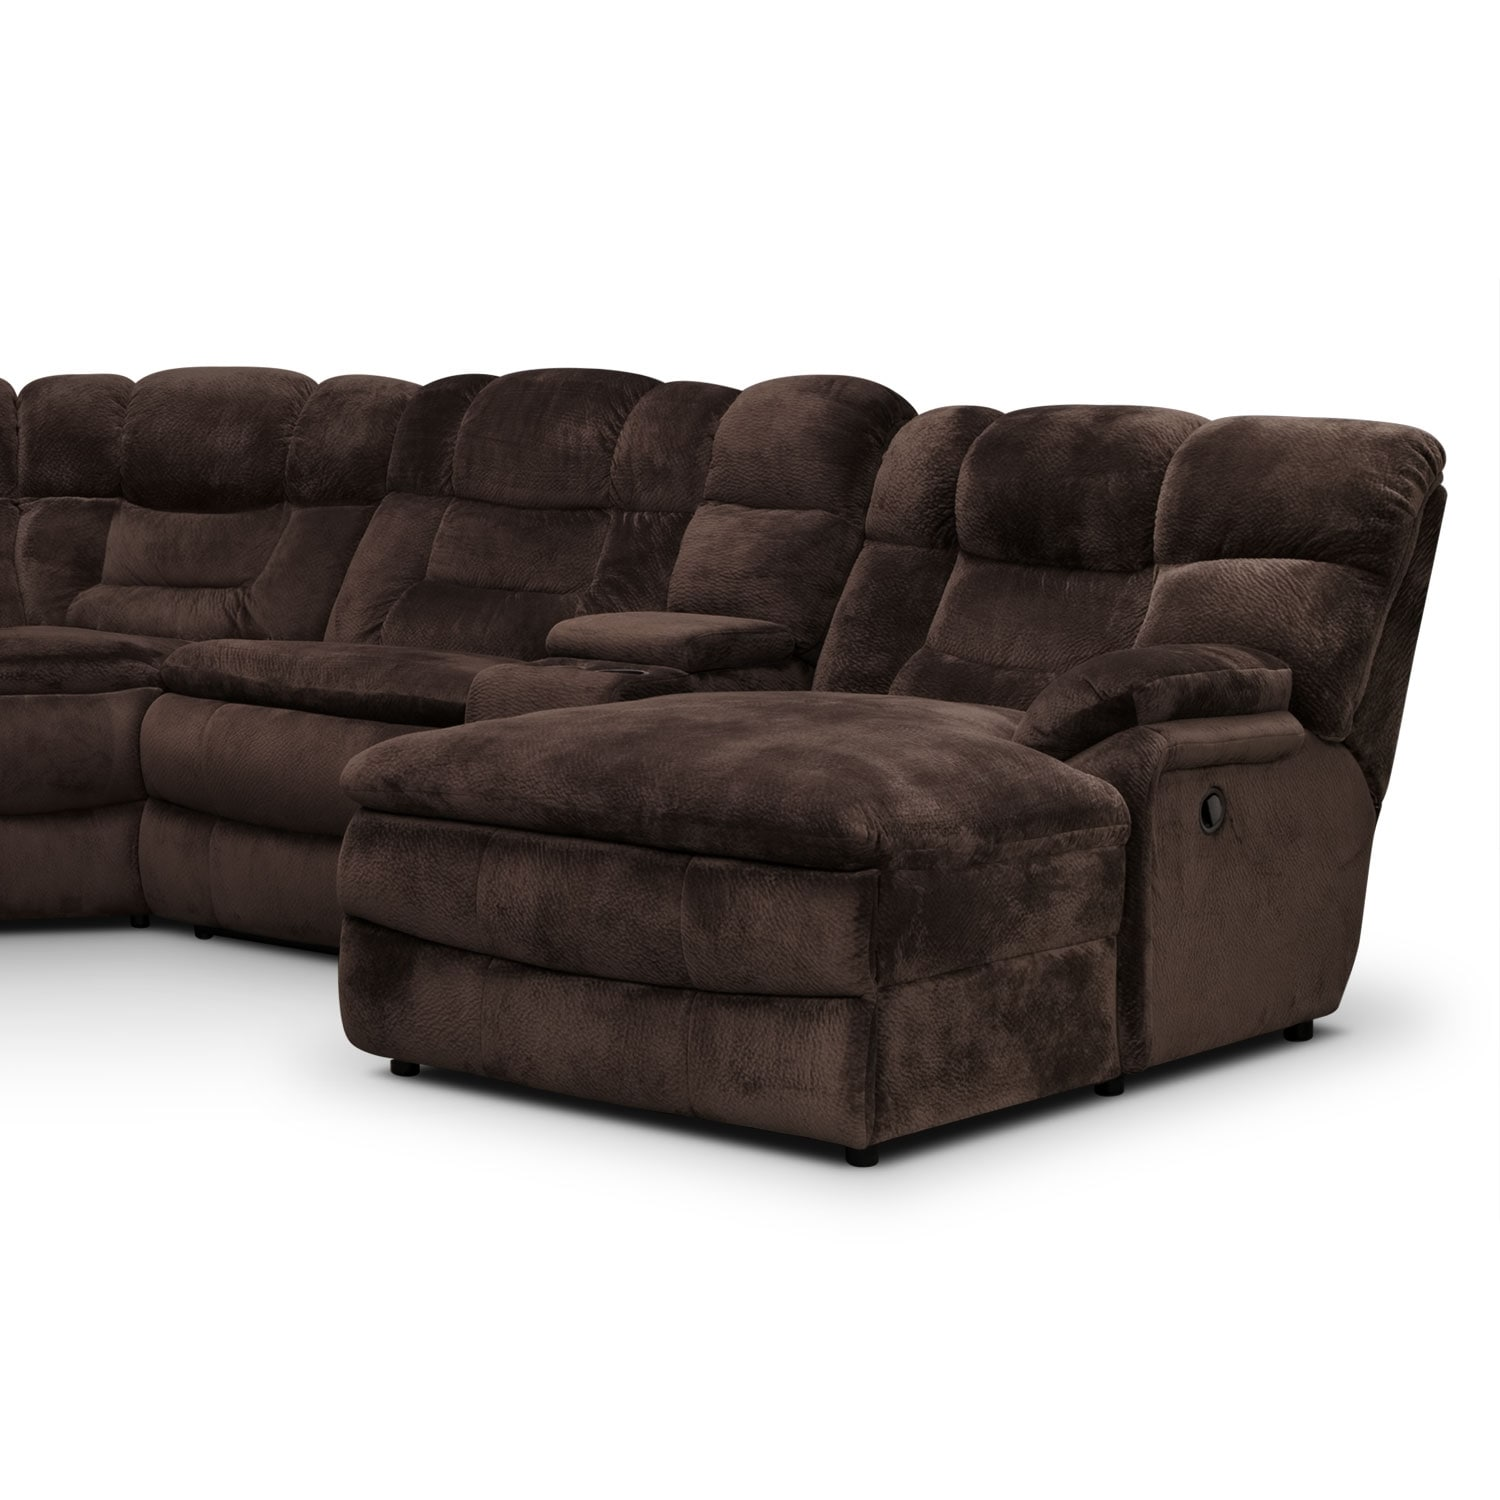 back of sofa facing fireplace leather repair london big softie 6 piece power reclining sectional with right